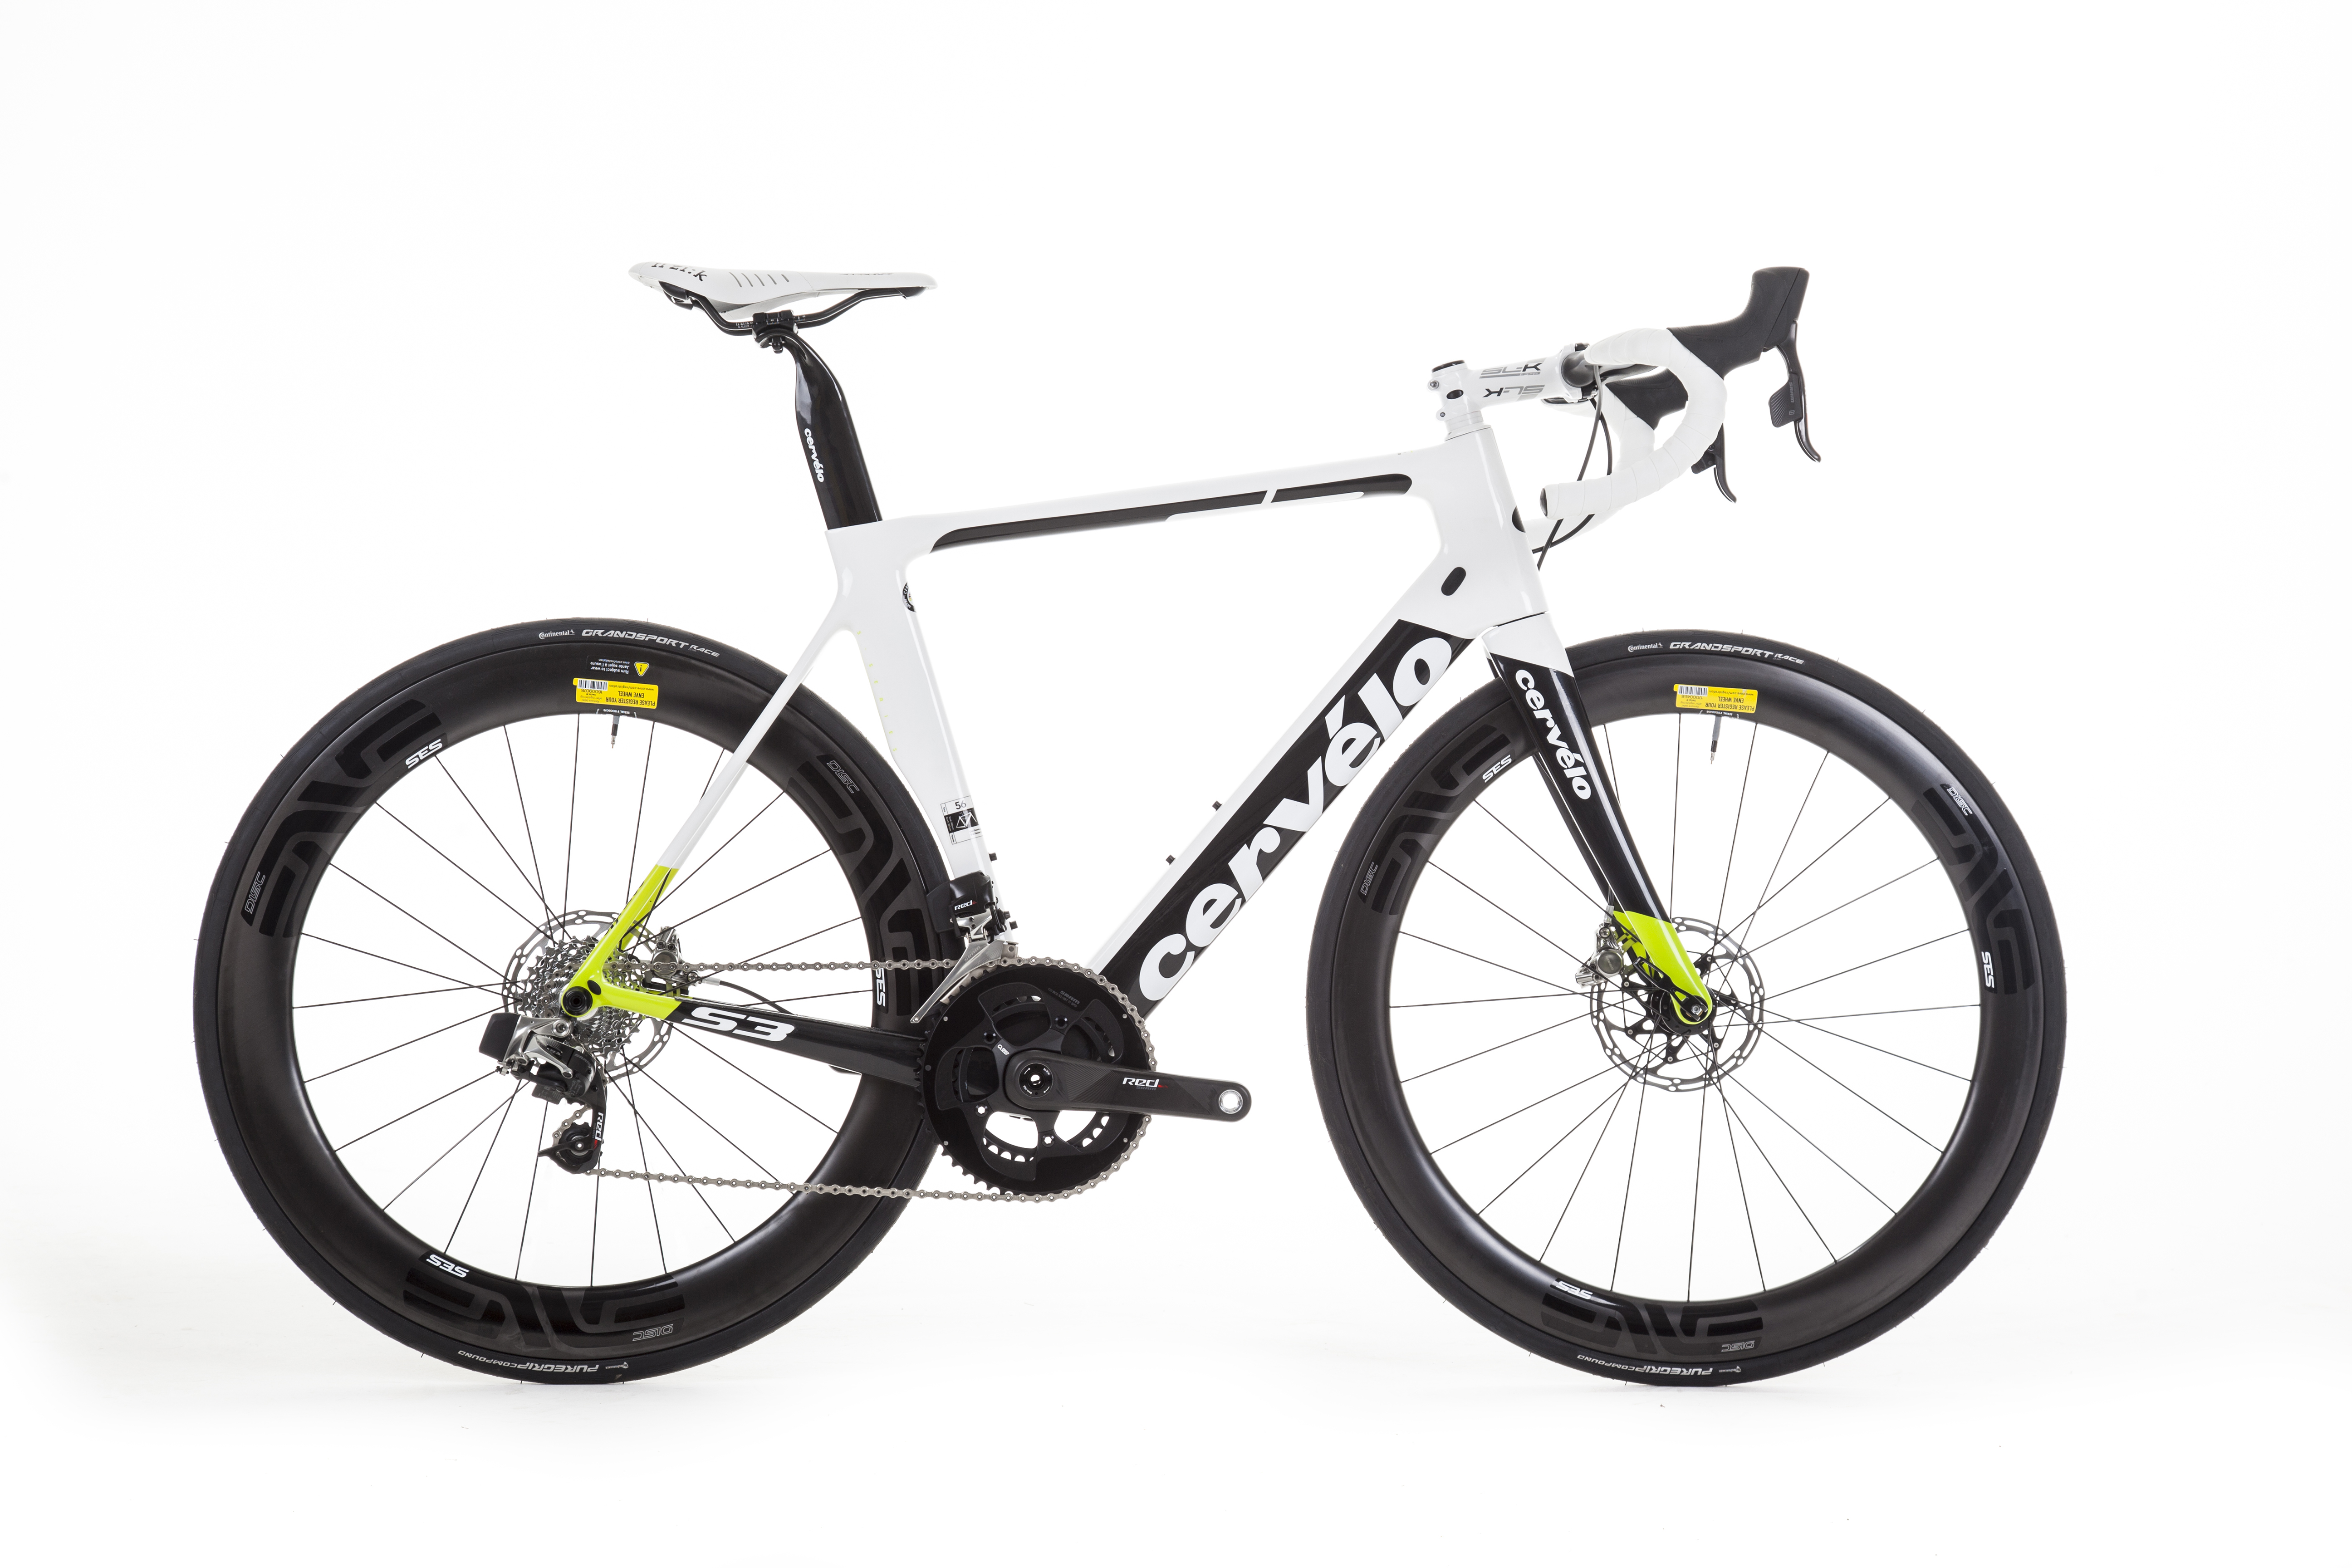 7d4ba5fa6eb Cervelo S3 Disc review - Cycling Weekly